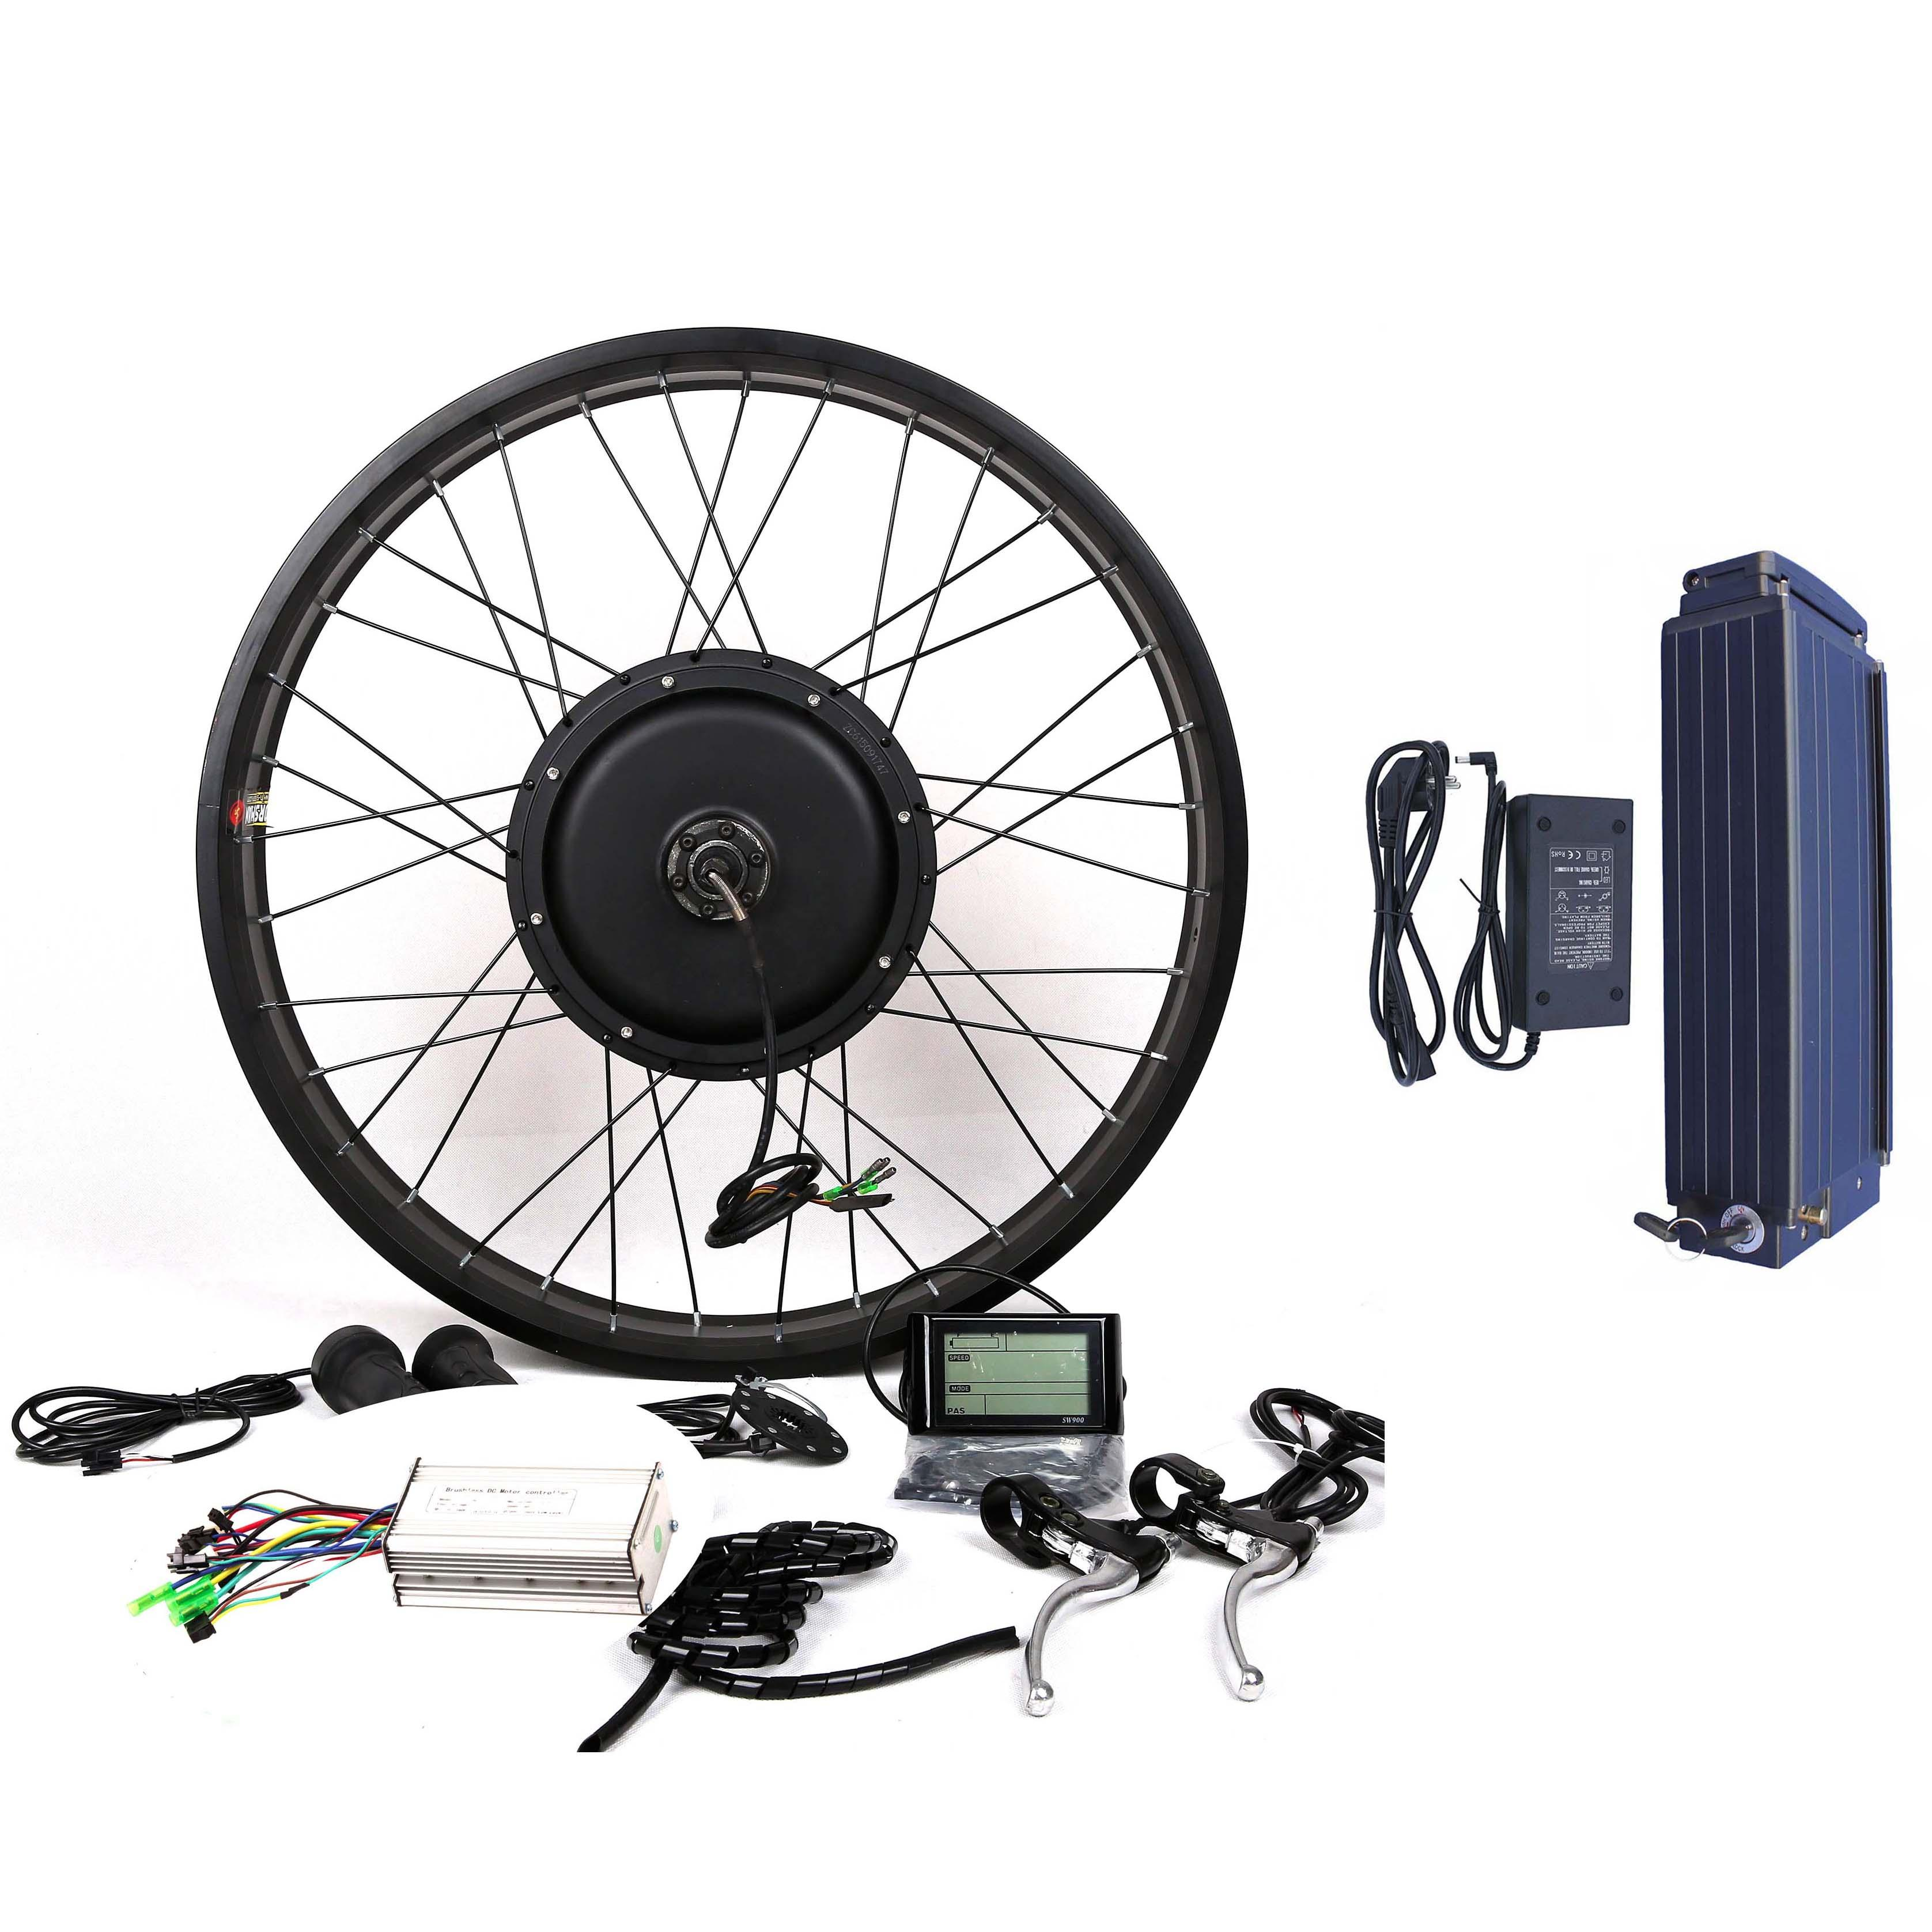 Details about 1500W motor + 48V20A Samsung 22P battery Electric Bicycle E  bike Conversion kit